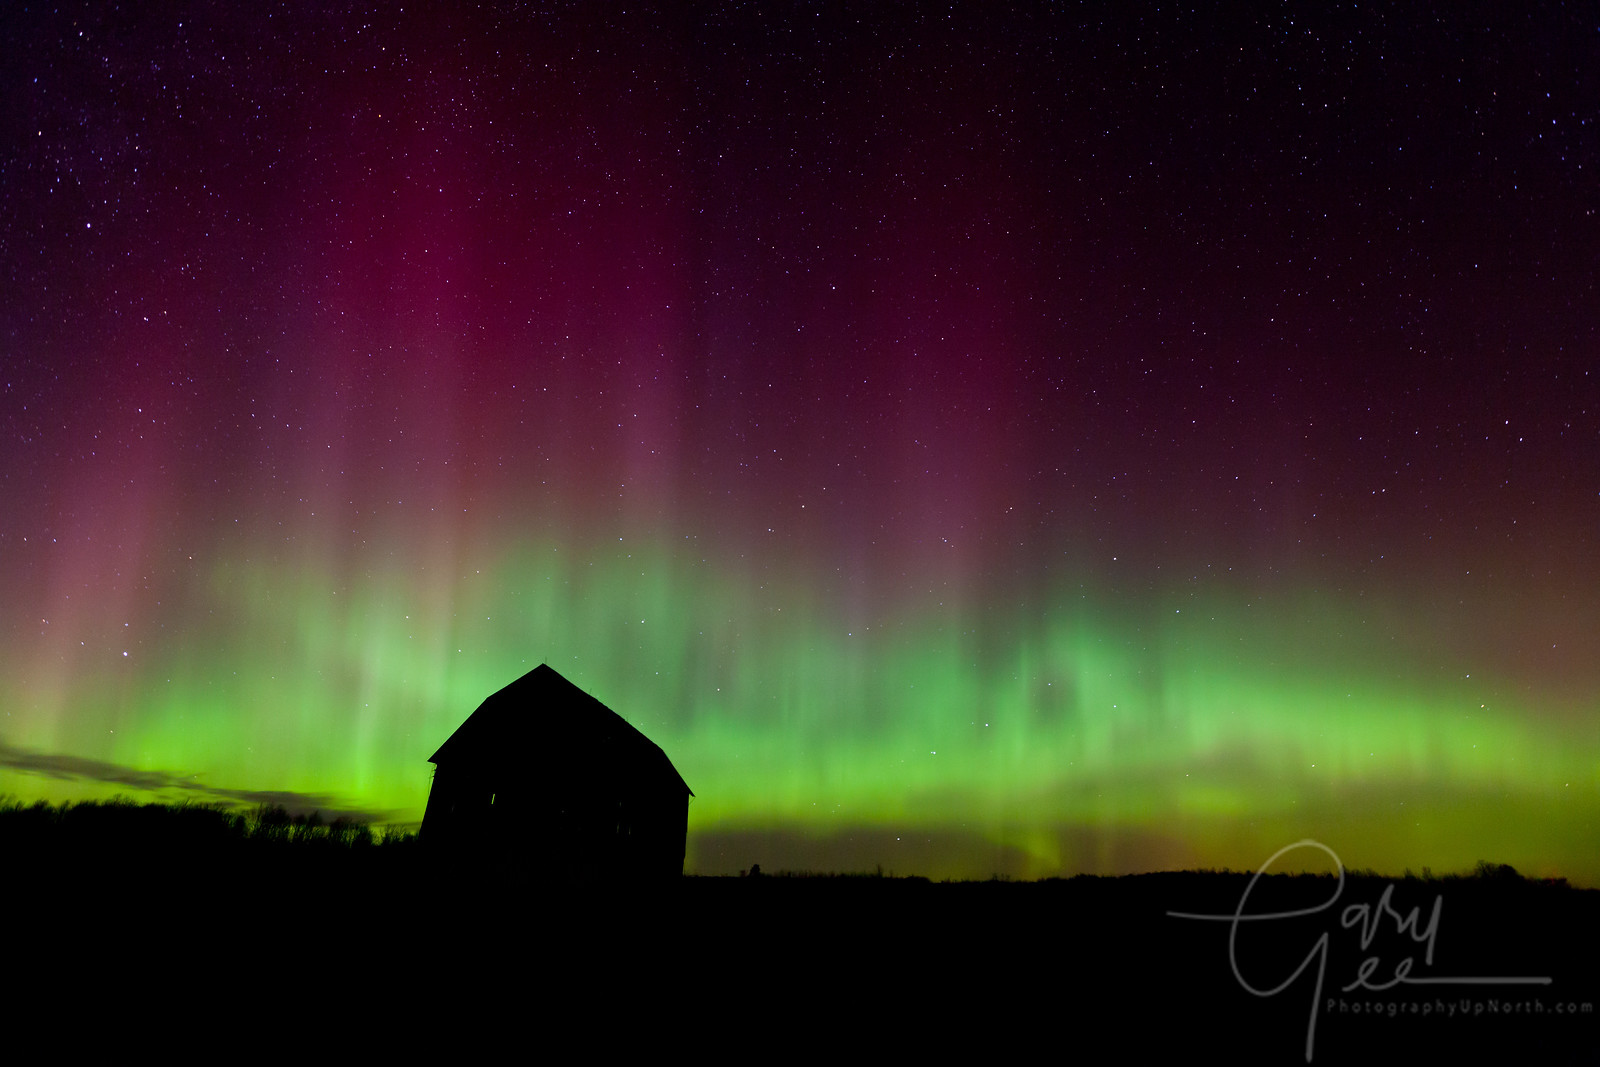 Brilliant display of Northern Lights with old barn in Michigan.